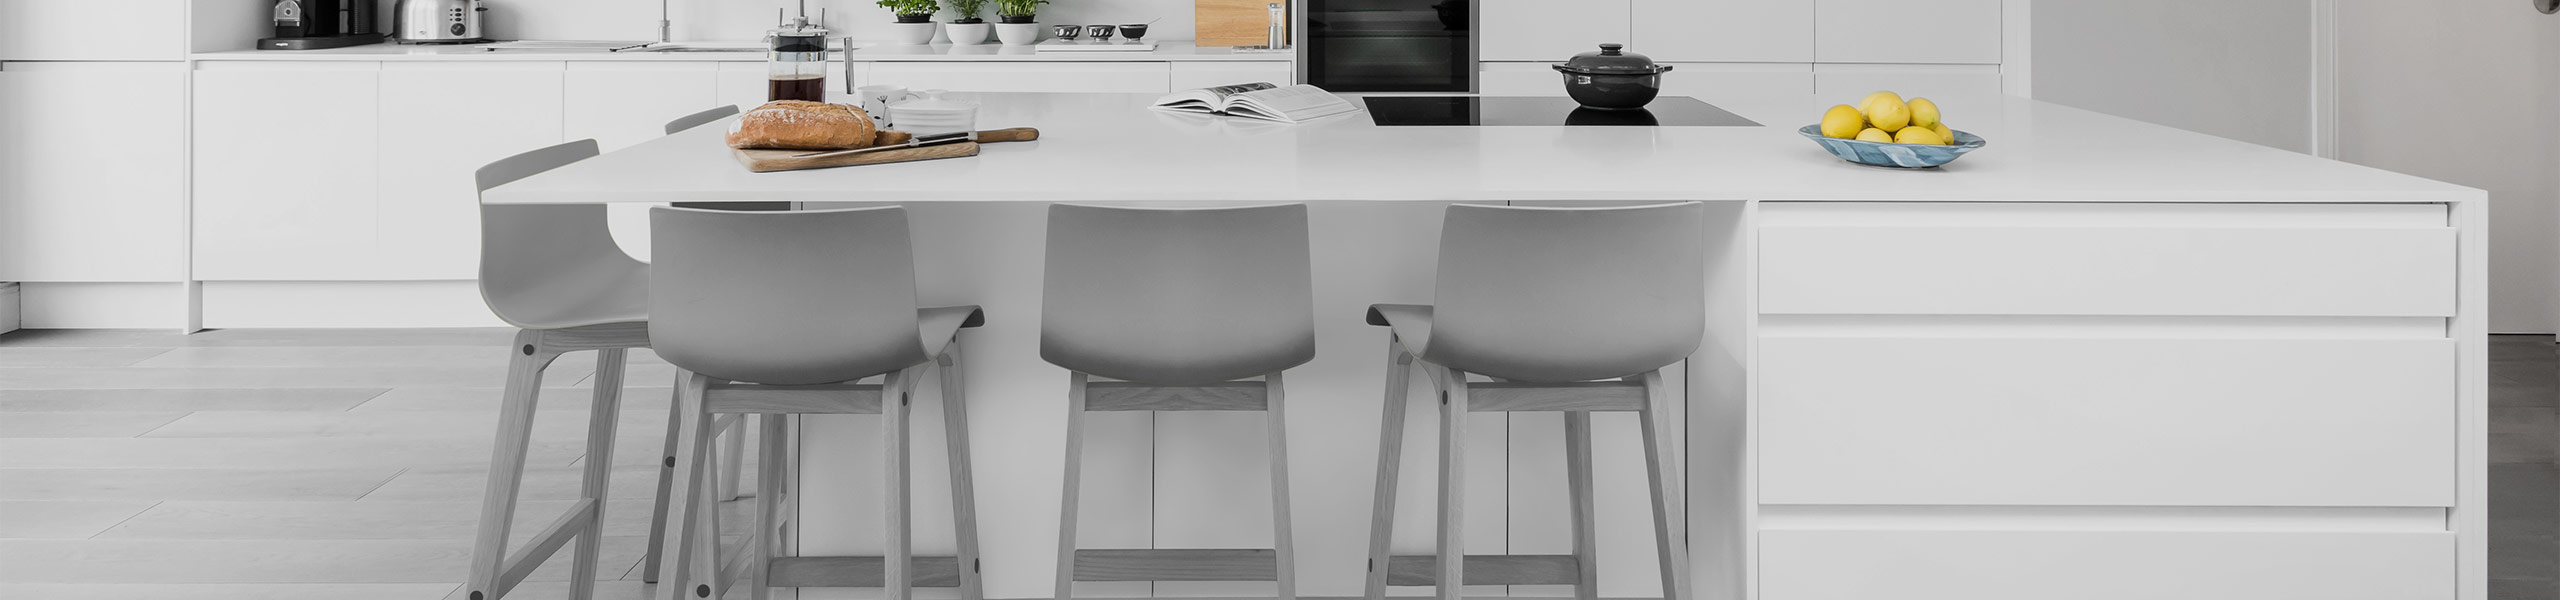 Coast Bar Stool Grey Video Banner